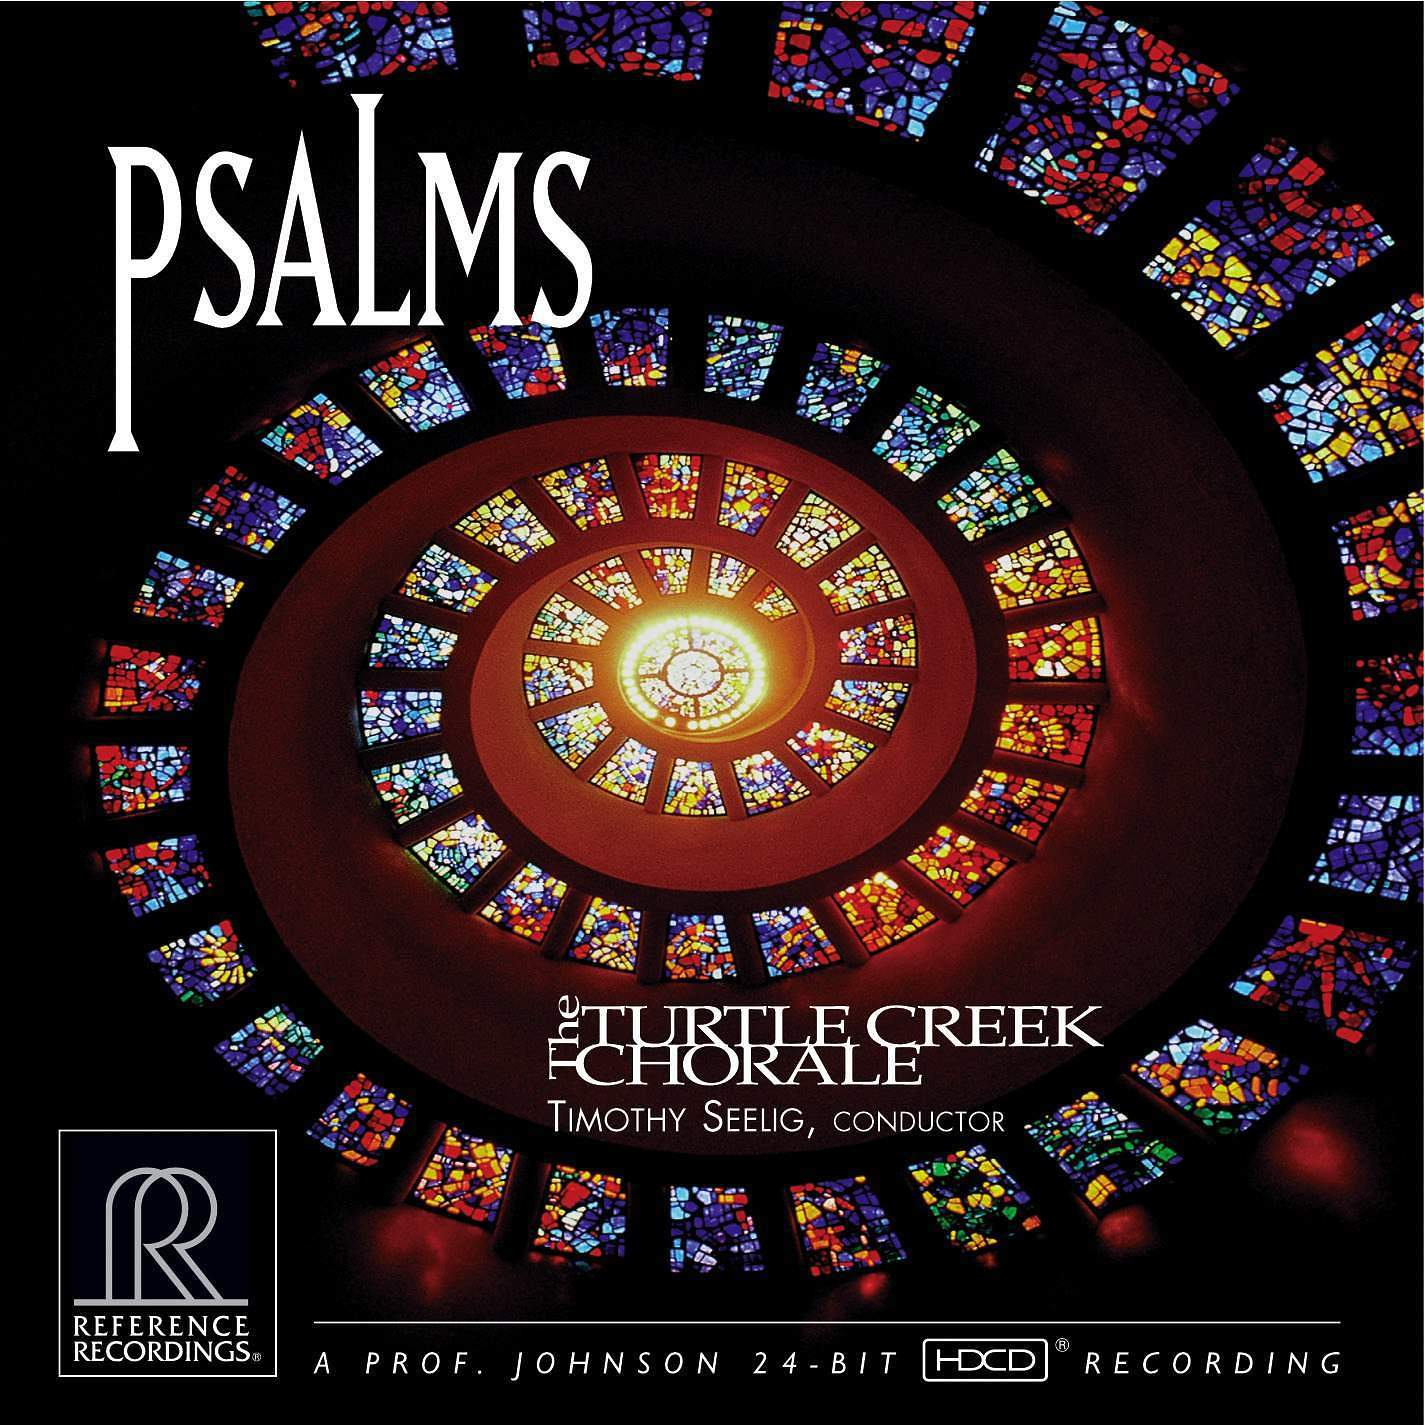 Psalms | Turtle Creek Chorale